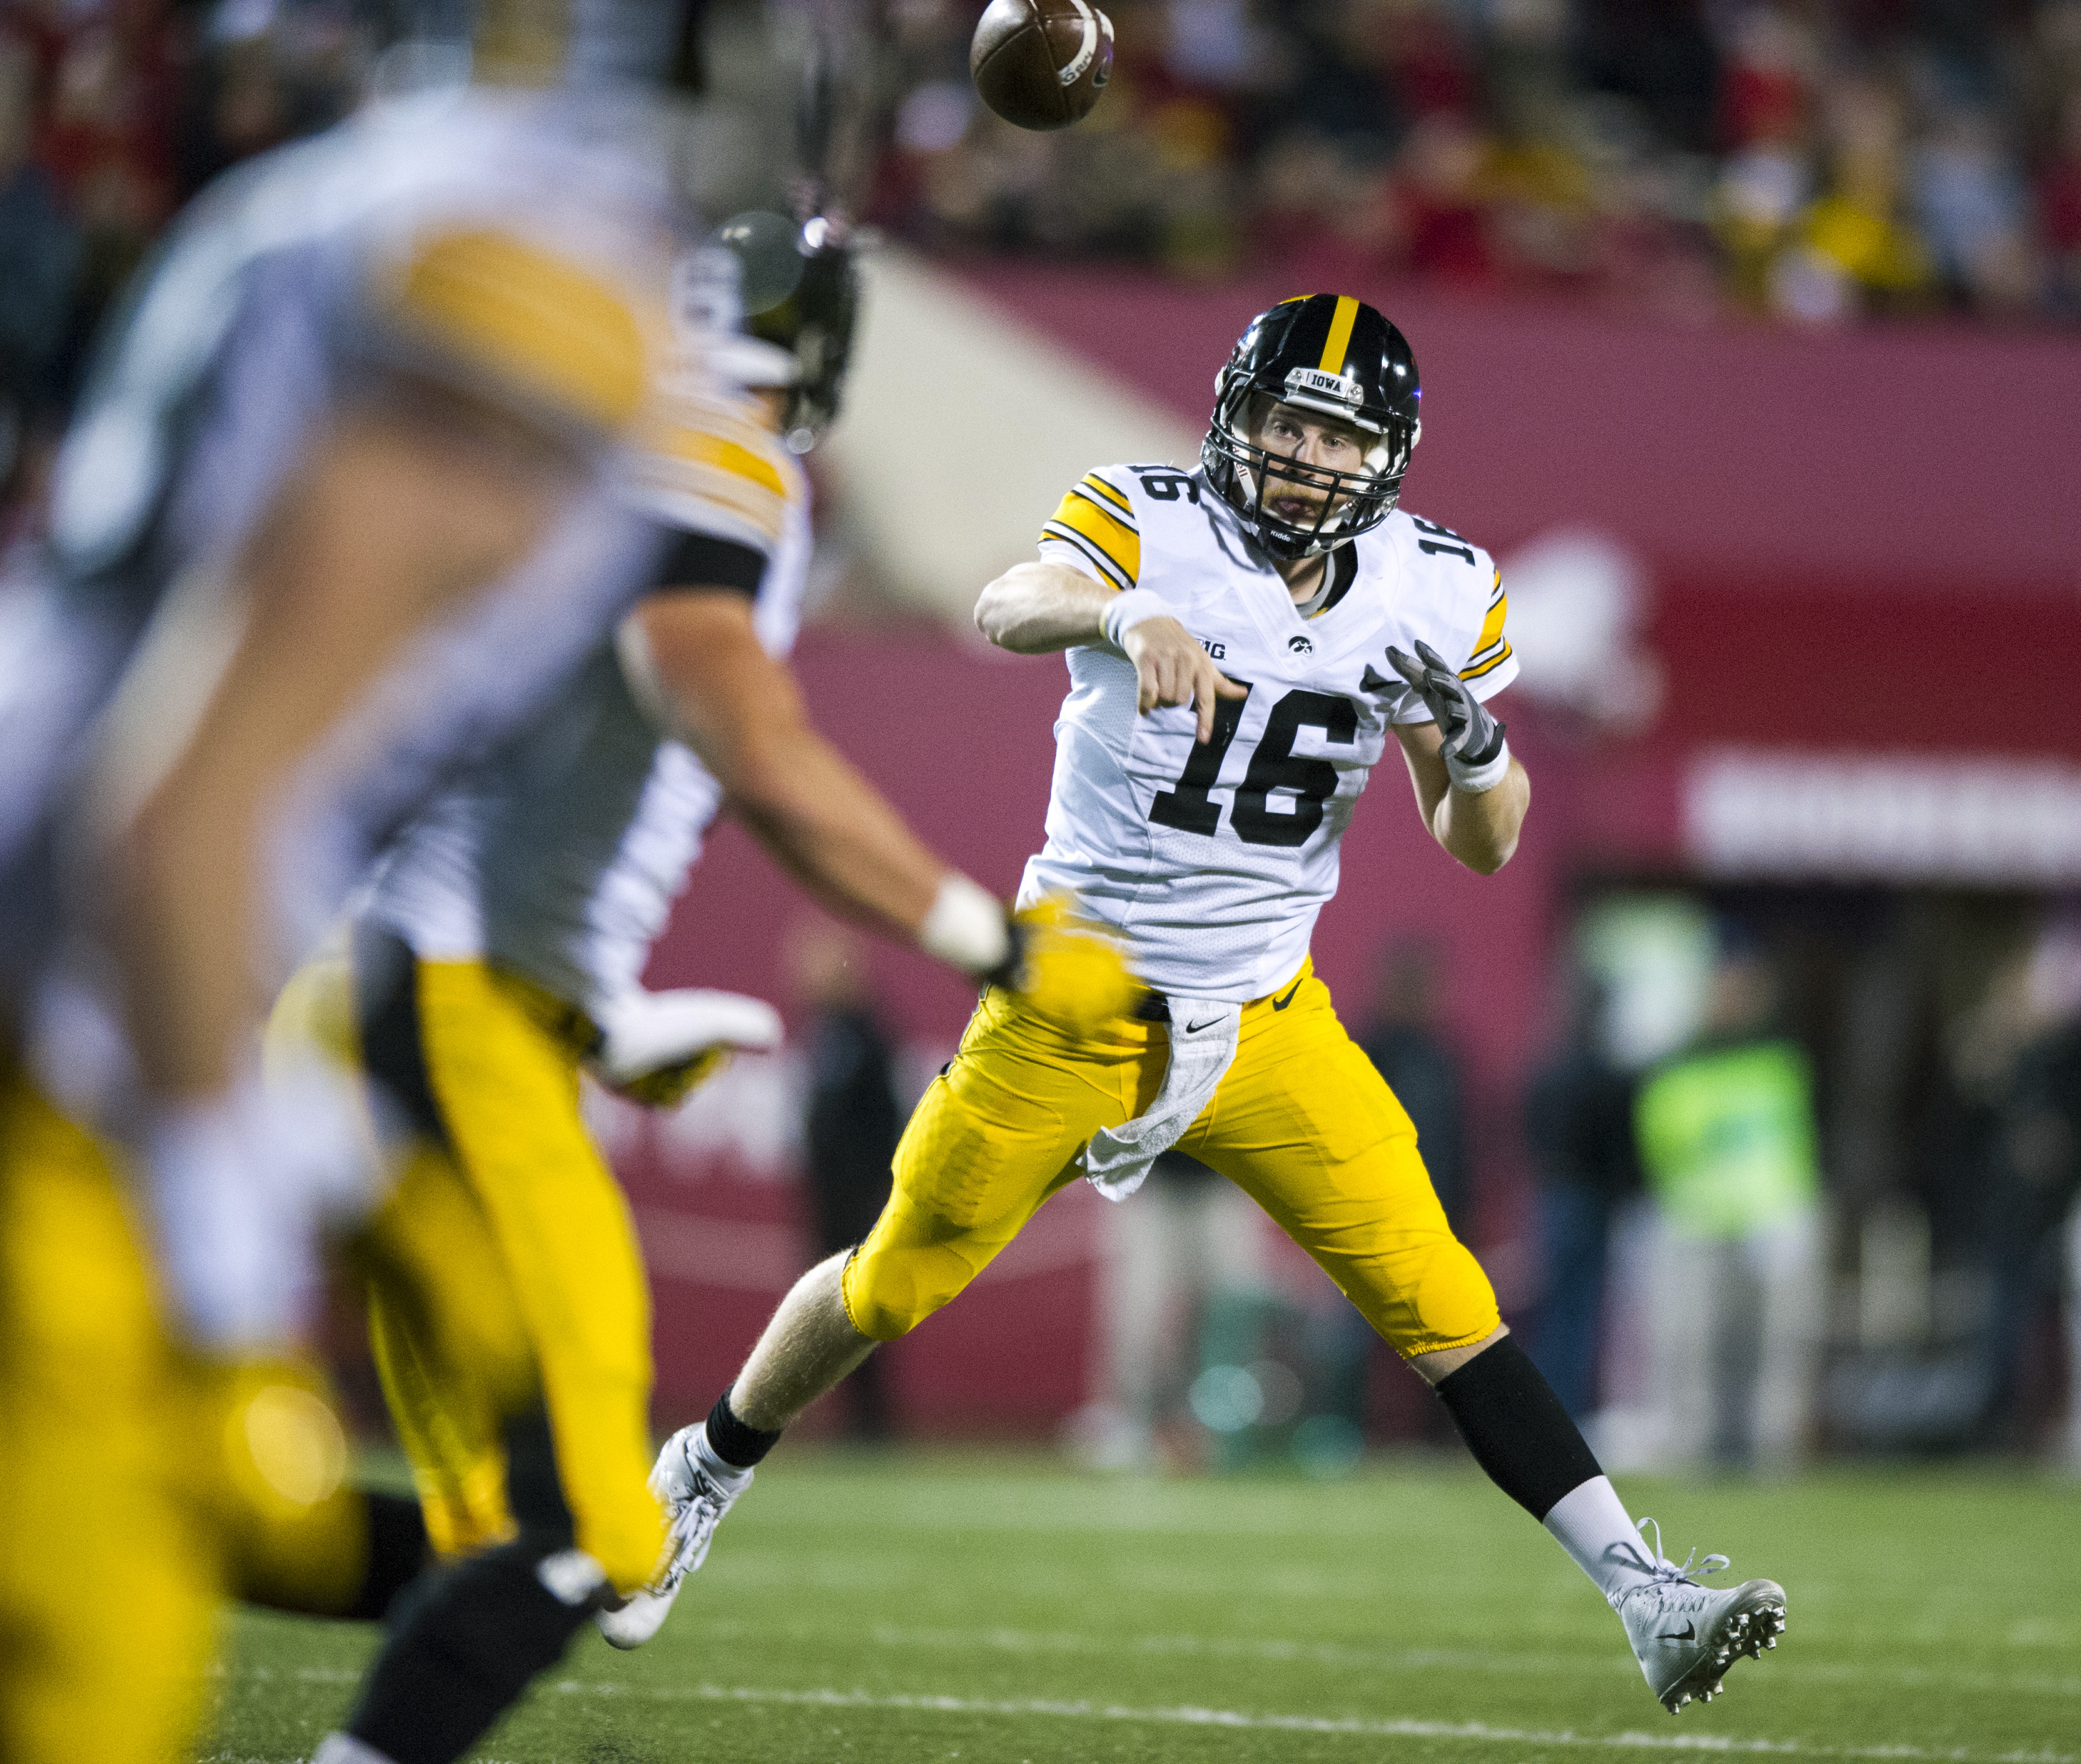 Iowa quarterback C.J. Beathard (16) passes to tight end George Kittle (46) to score against Indiana during the second half of an NCAA college football game in Bloomington, Ind., Saturday, Nov. 7, 2015. Iowa won 35-27. (AP Photo/Doug McSchooler)